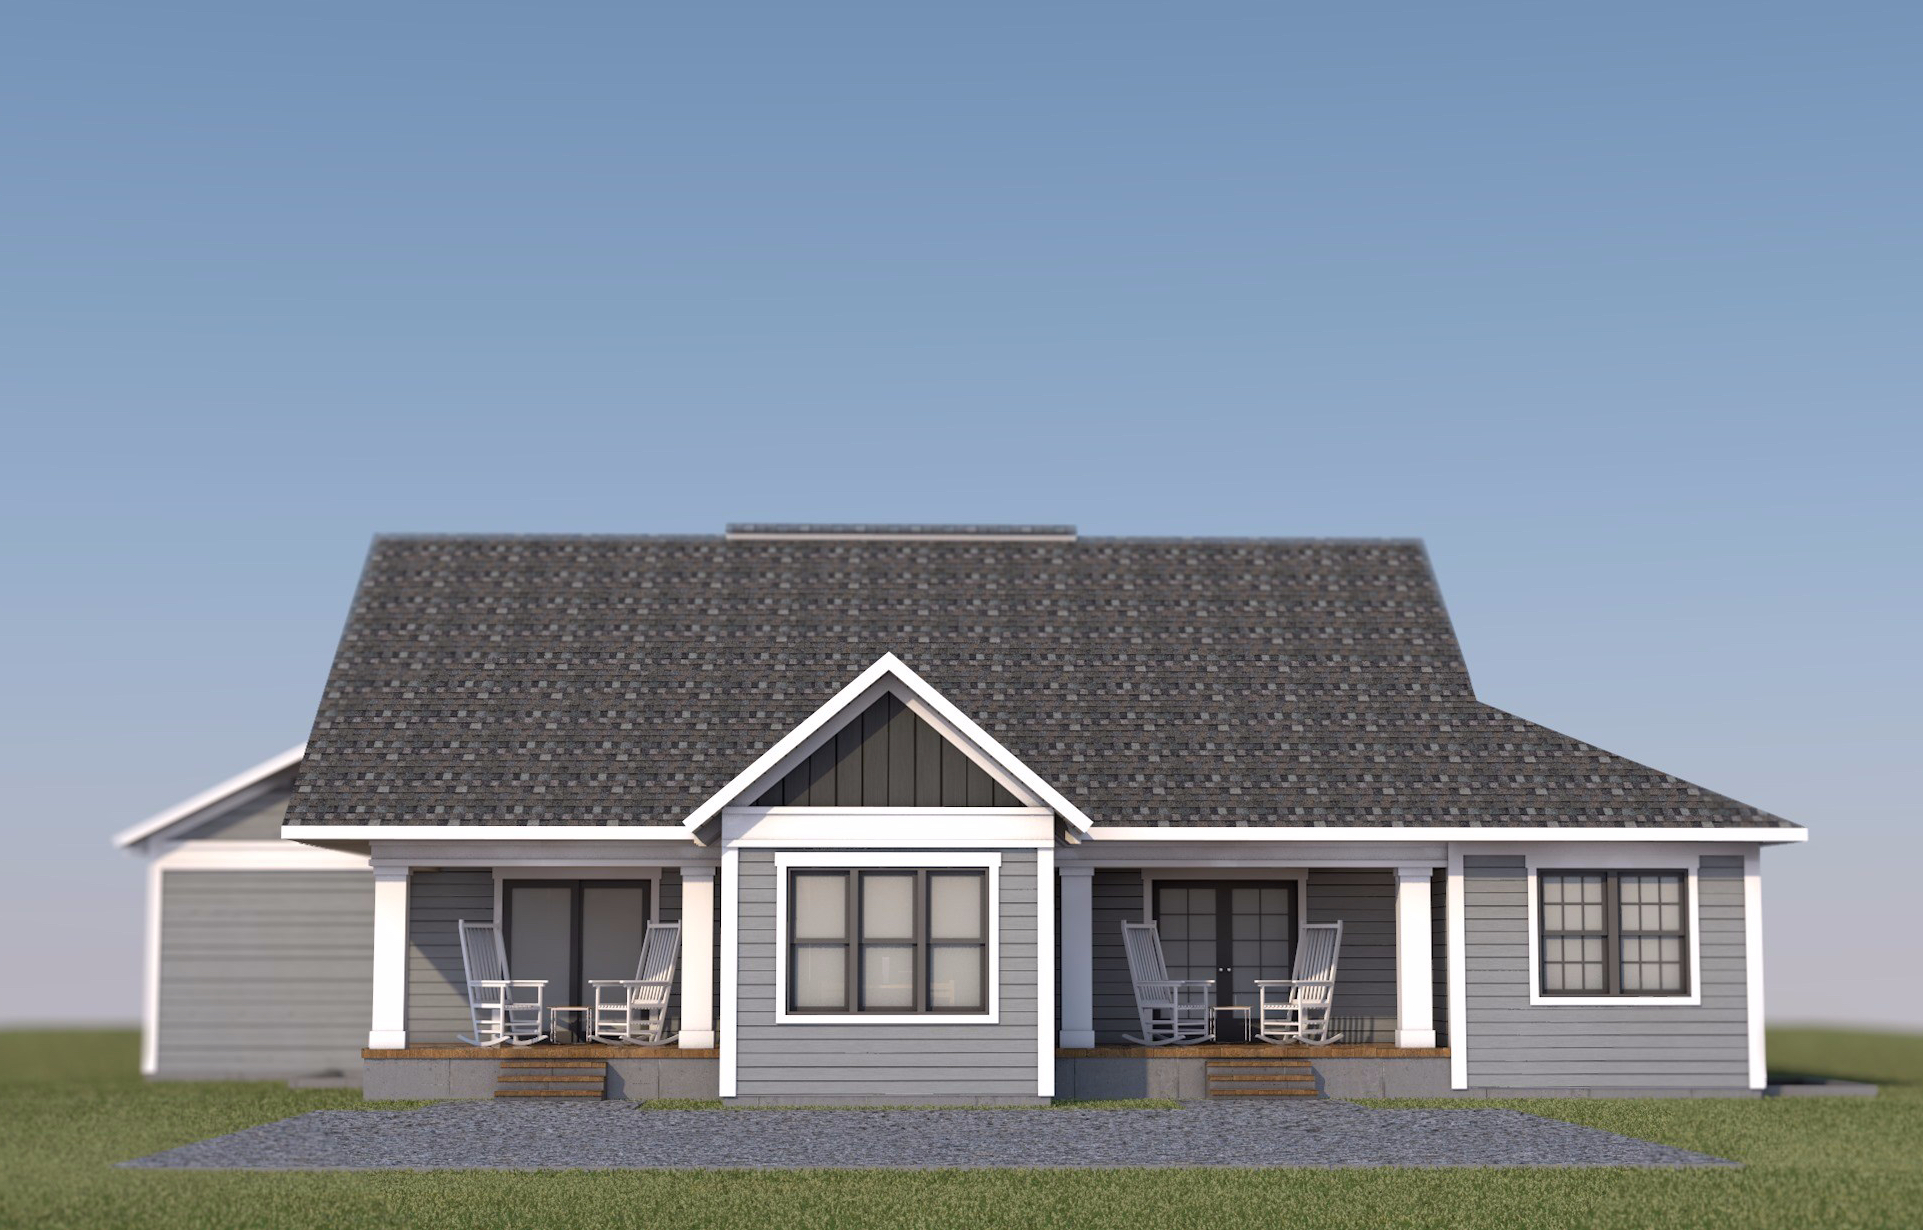 Farmhouse Rear Elevation 3d render